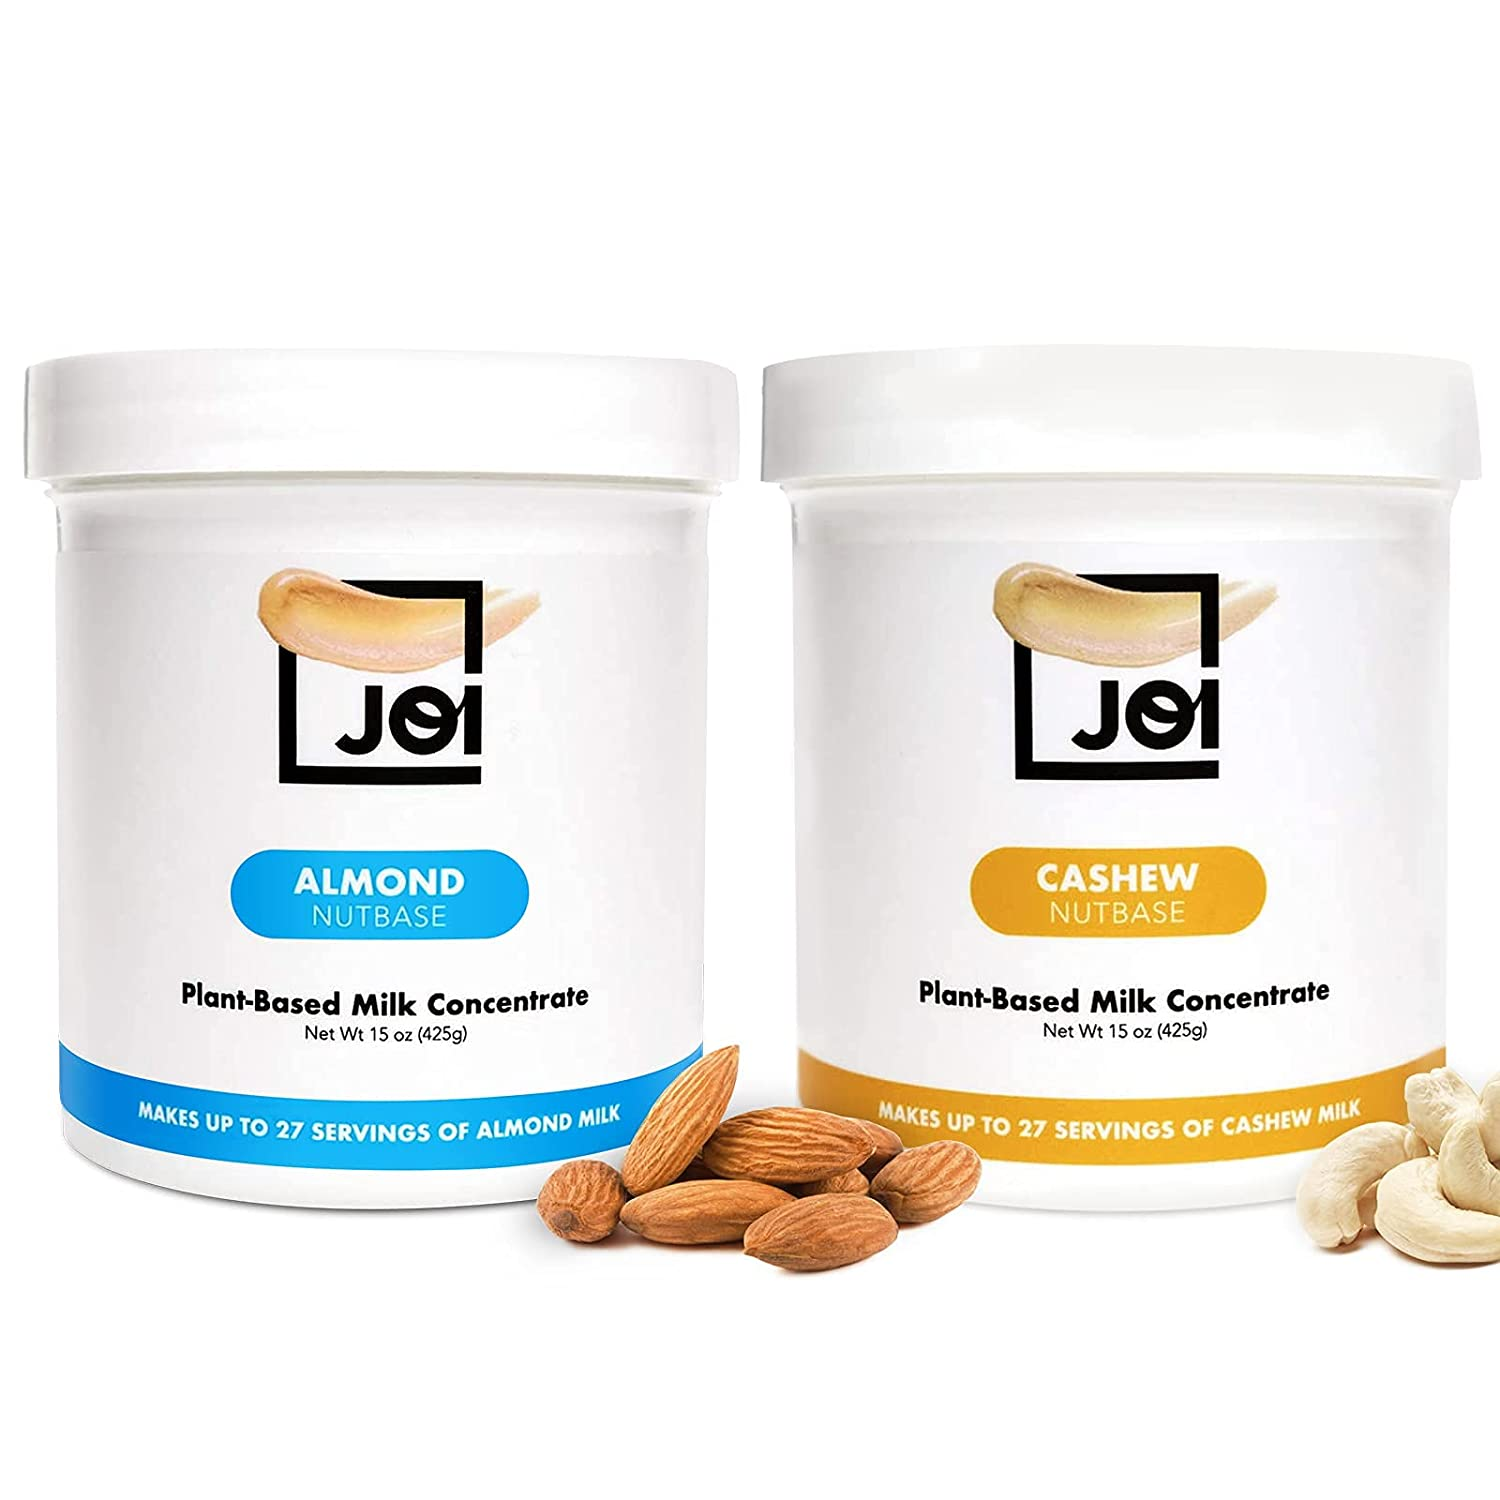 Unsweetened Almond and Cashew Milk Concentrate by JOI - 27 Servi